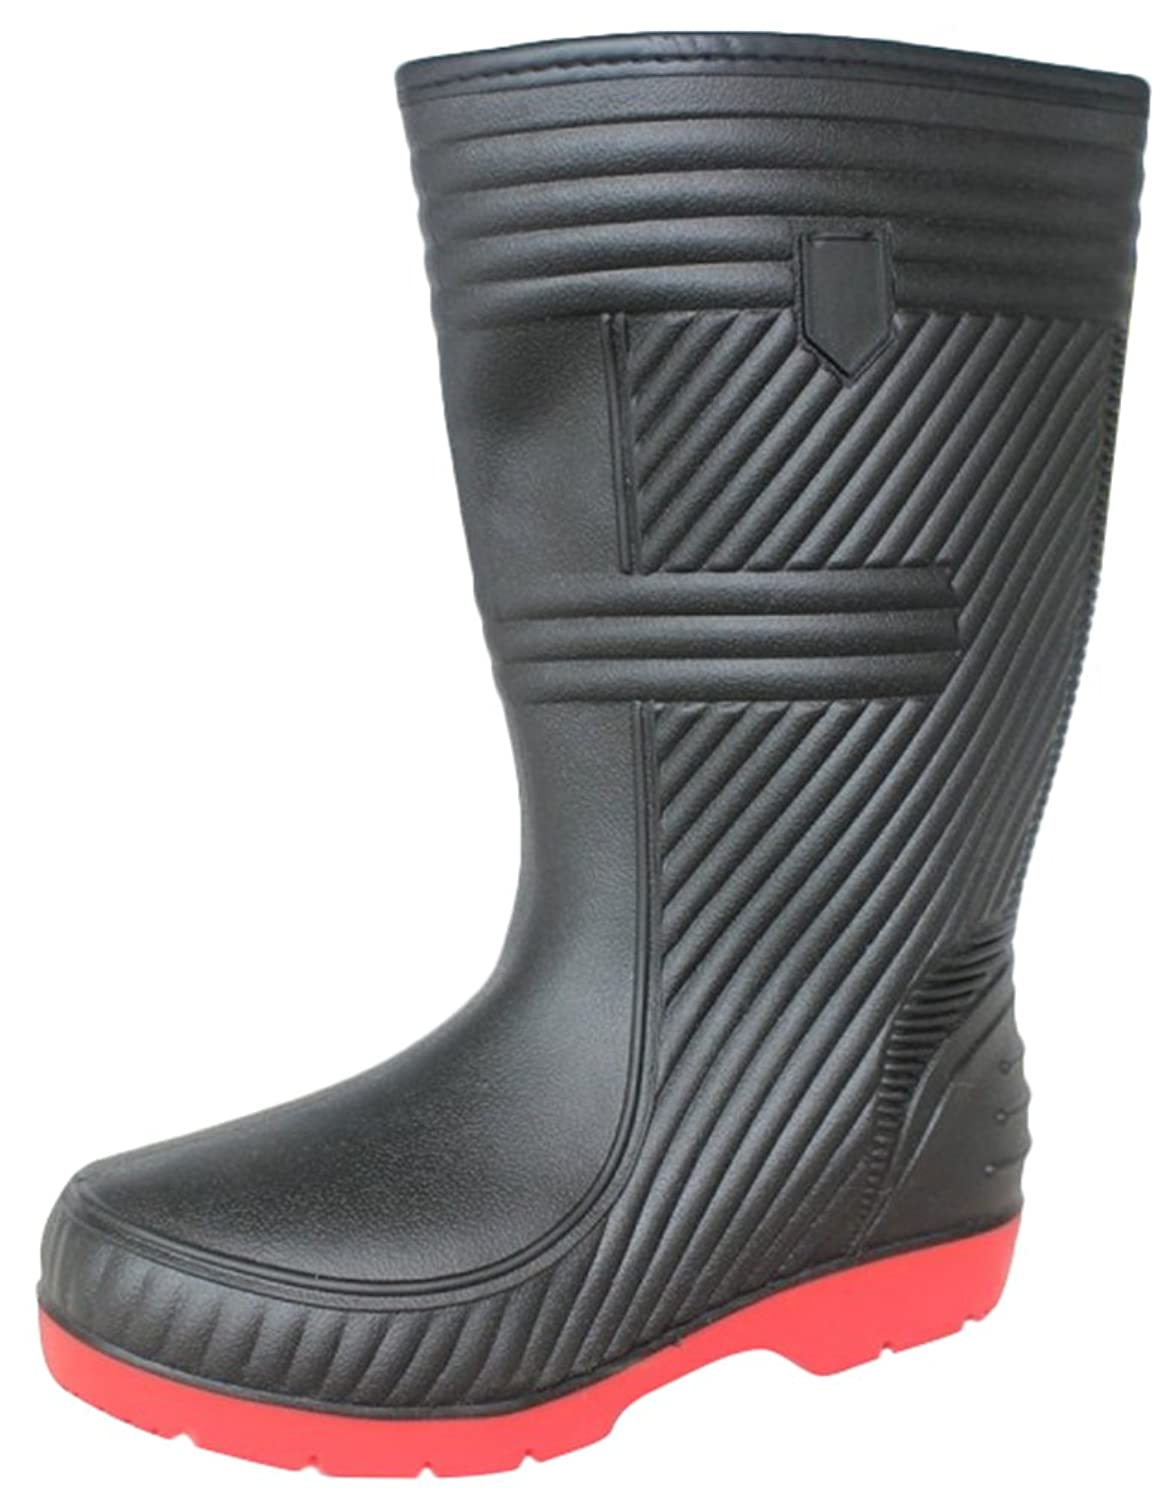 Ace Men's Waterproof Anti-skid Mid-calf Pull-on Work Boots Rain Boot